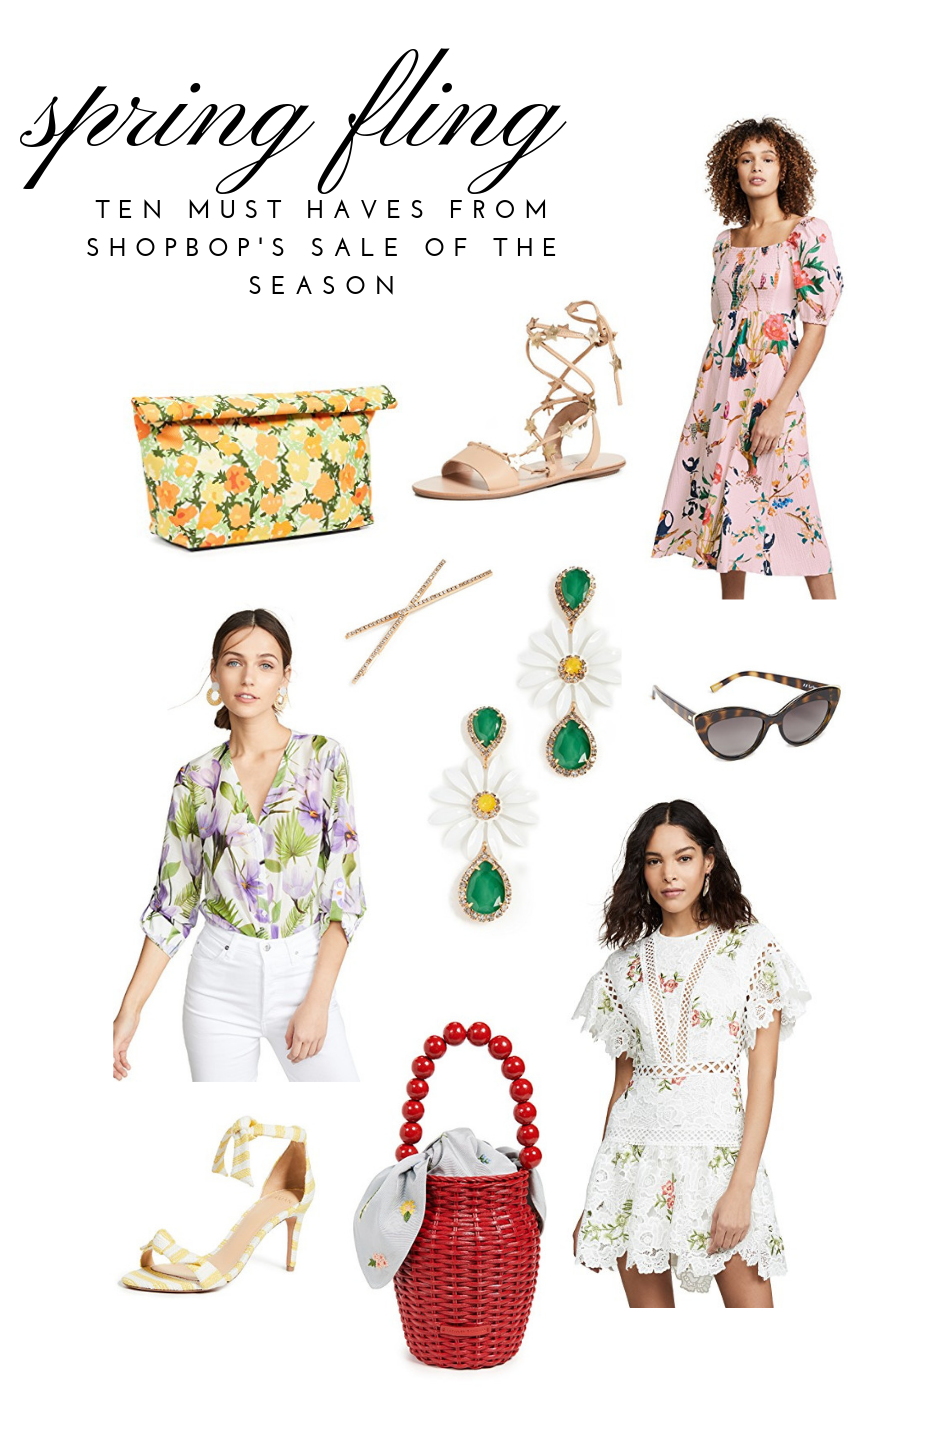 Ten Spring Summer Finds From Shopbop's Sale